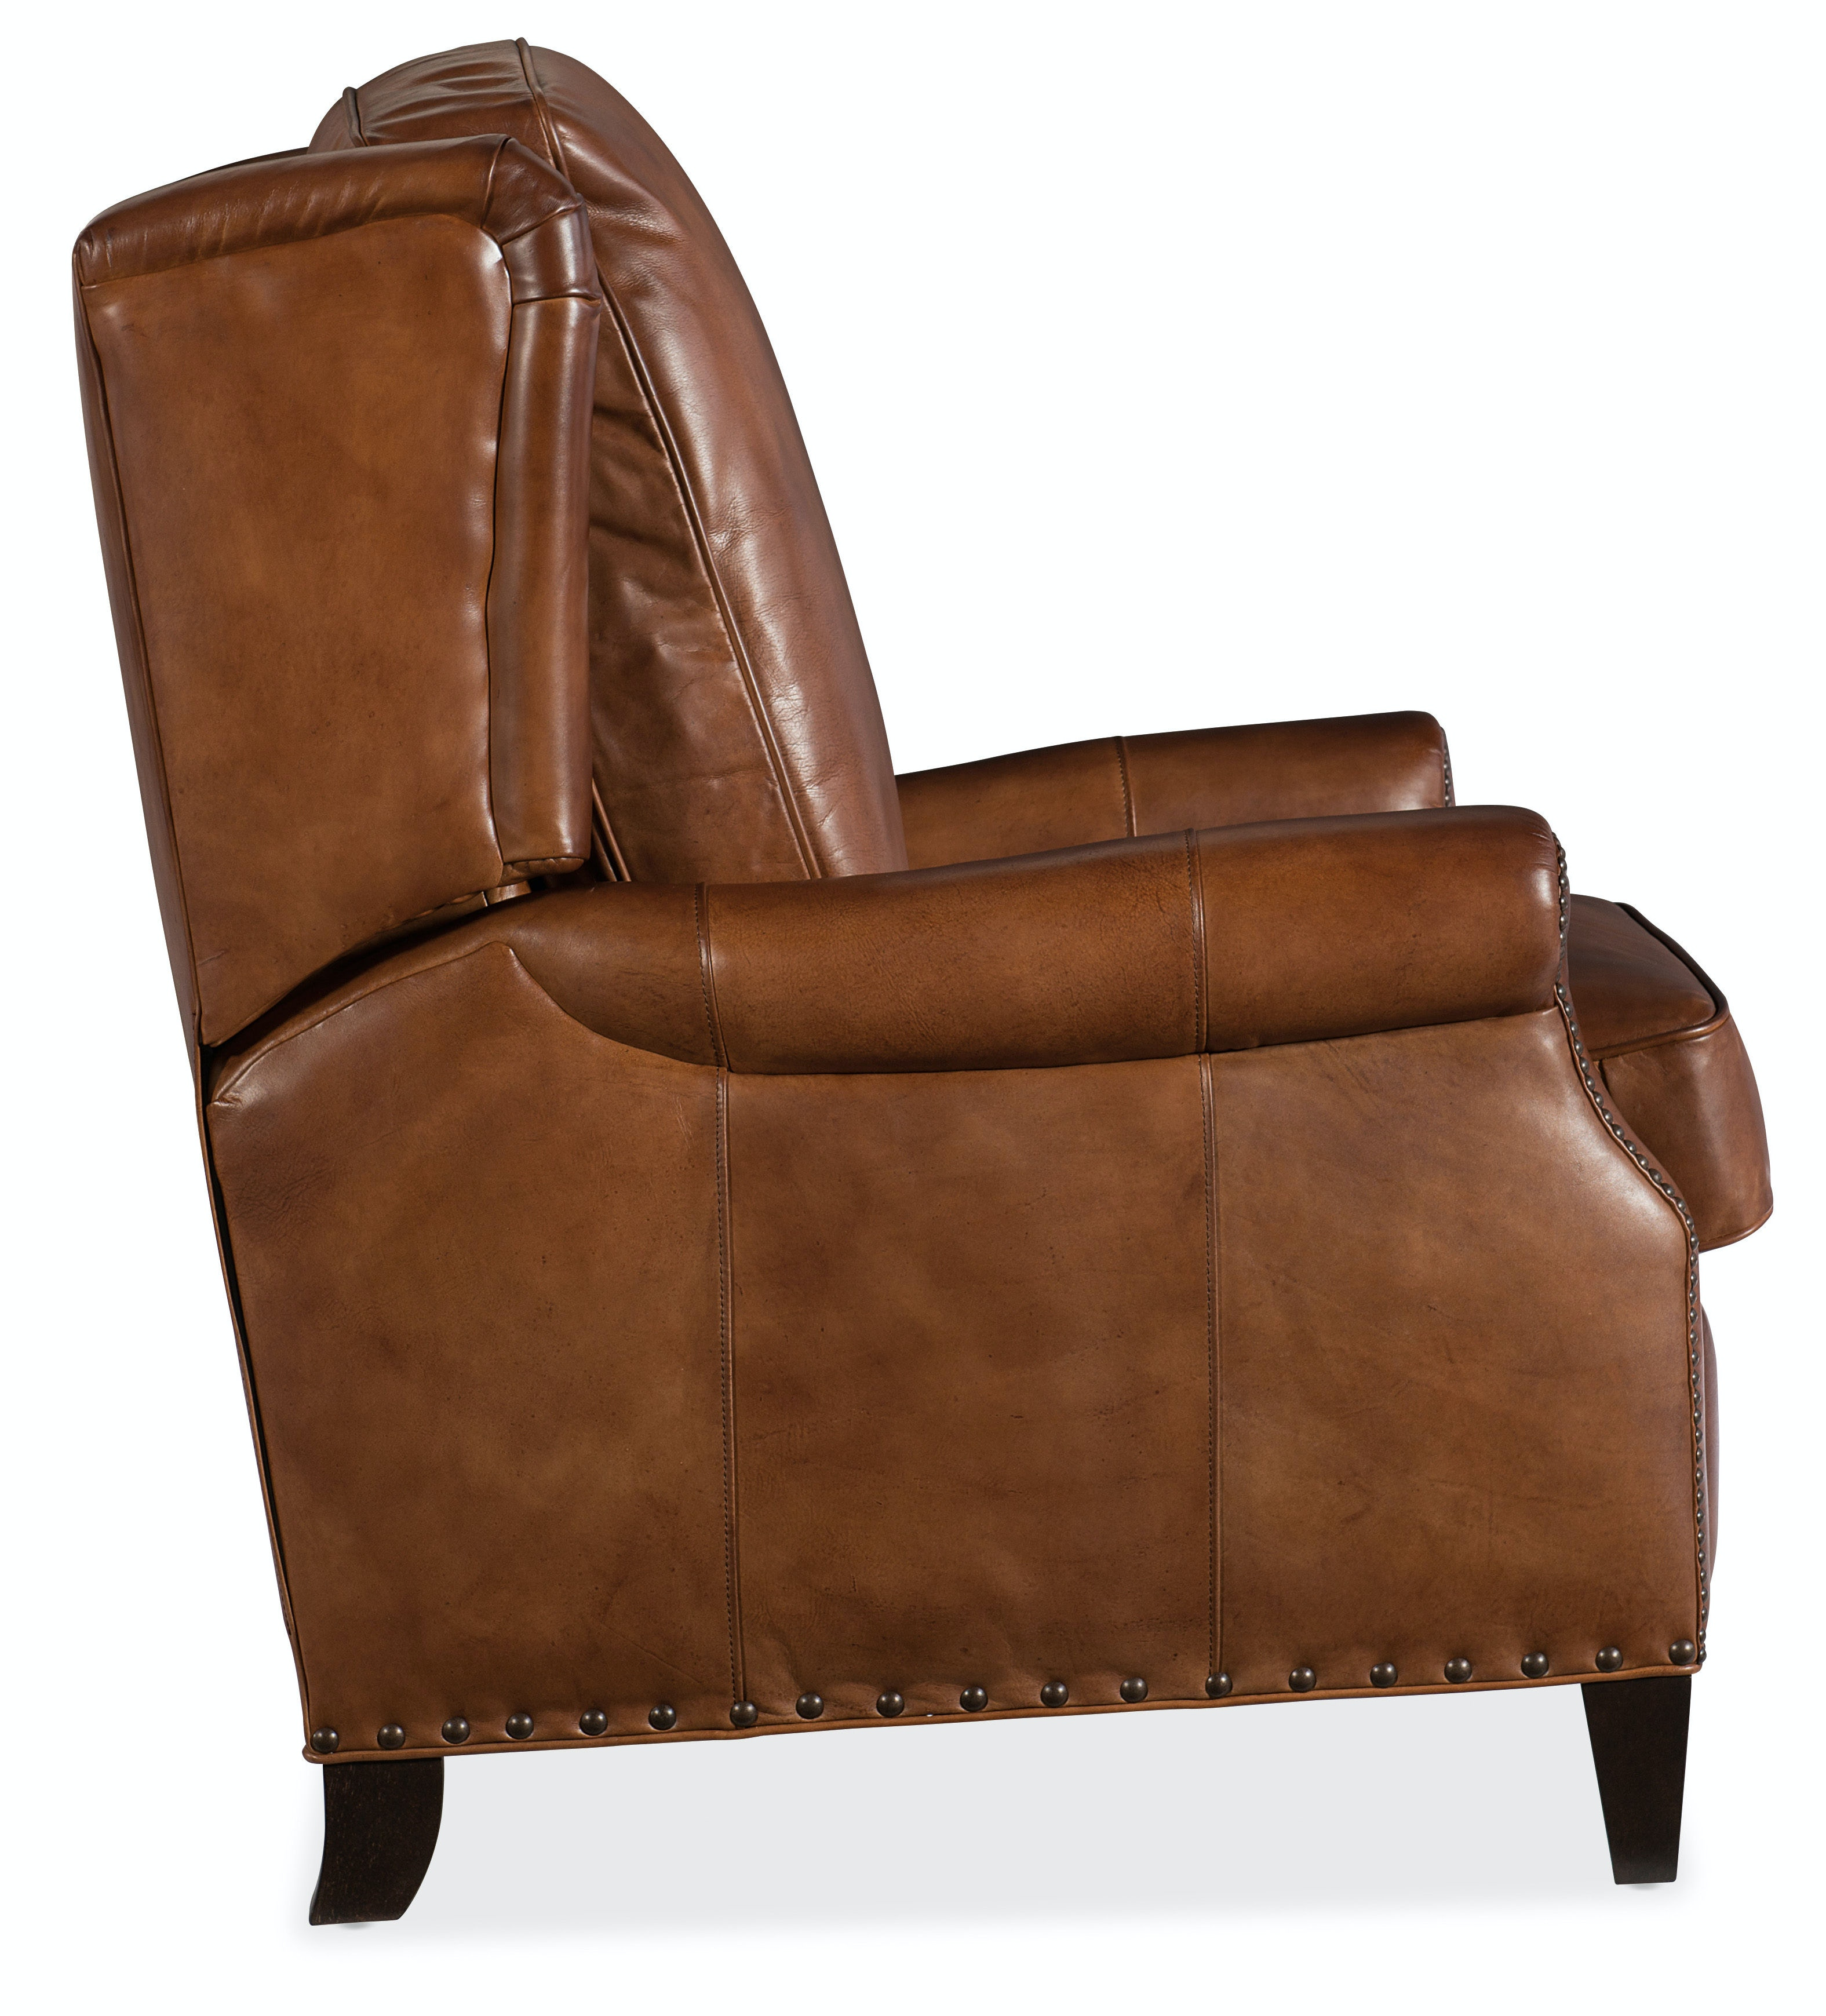 Hooker Furniture Silas Recliner RC273 086